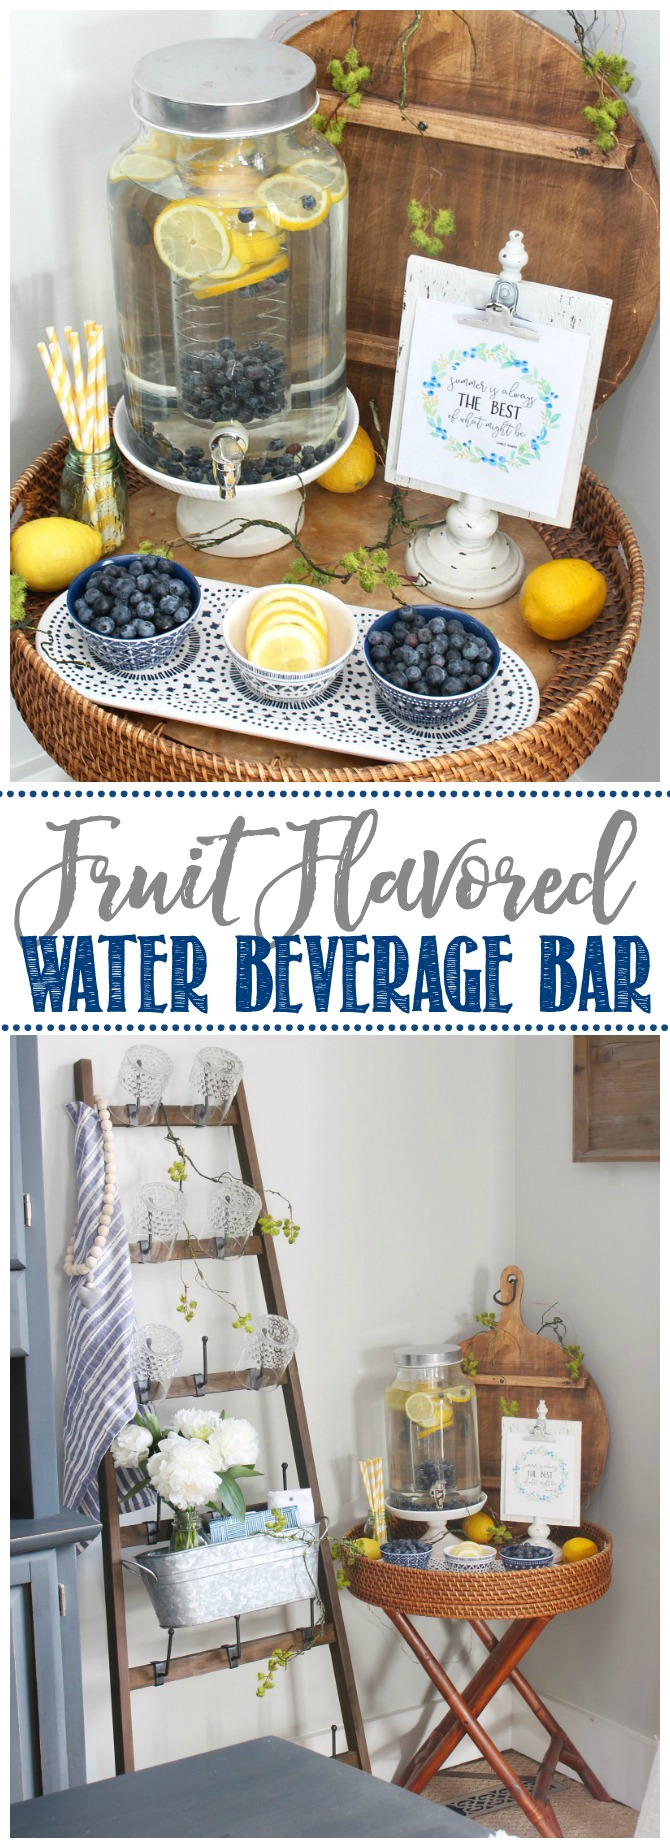 Fruit flavored water beverage bar with blueberries and lemons.